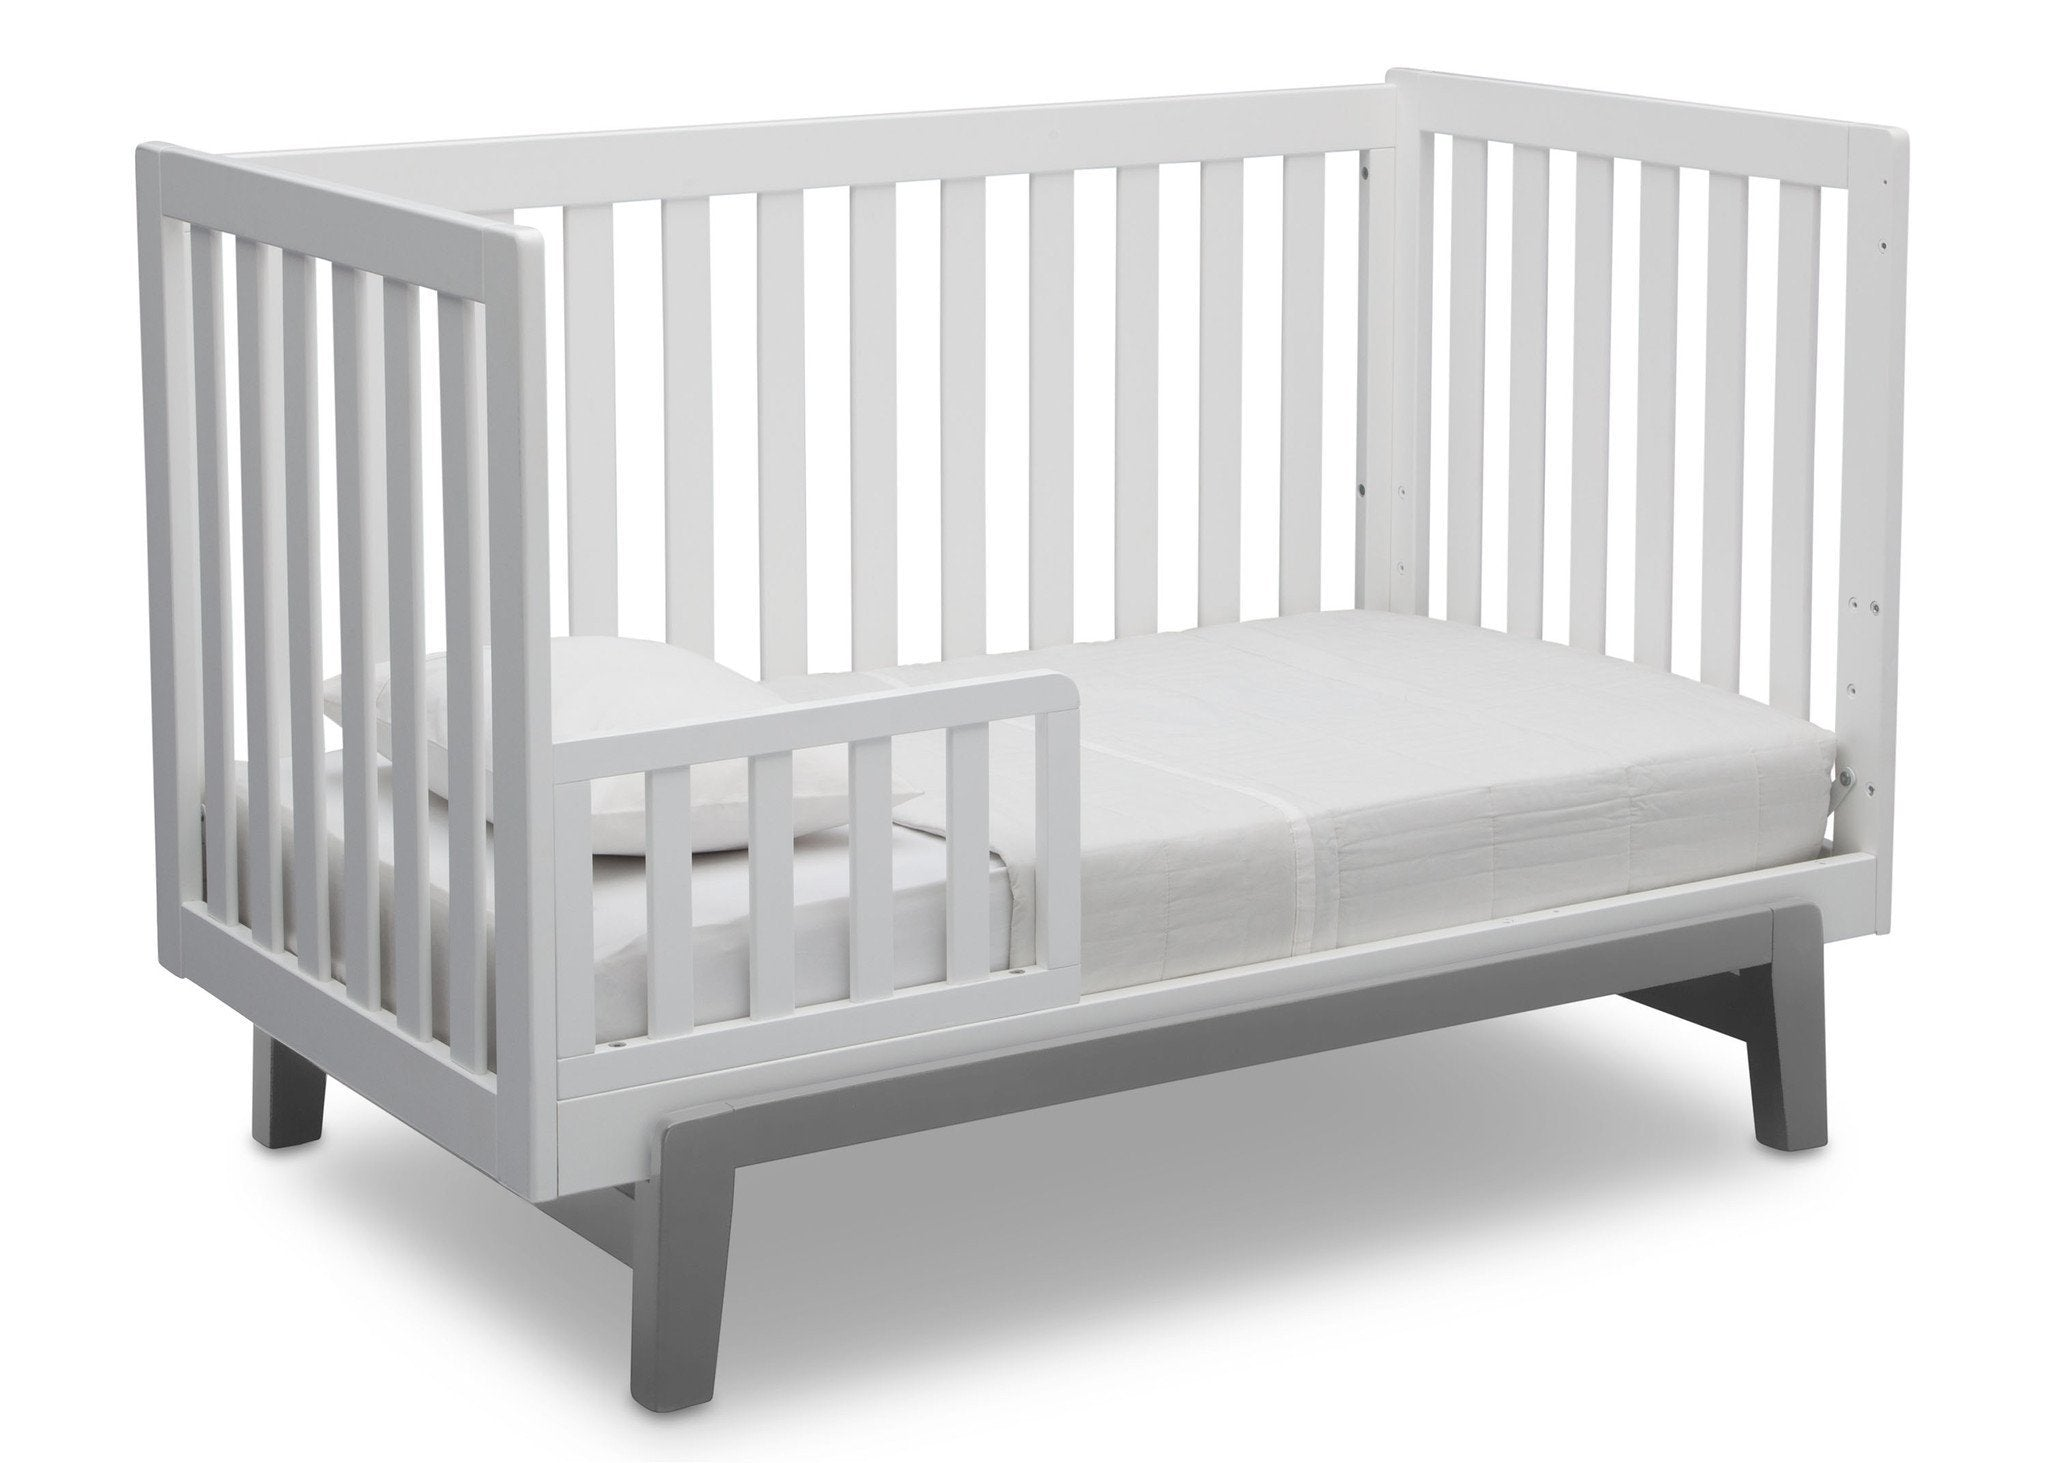 Delta Children Bianca White with Grey (166) Aster 3-in-1 Crib, Toddler Bed Conversion b6b